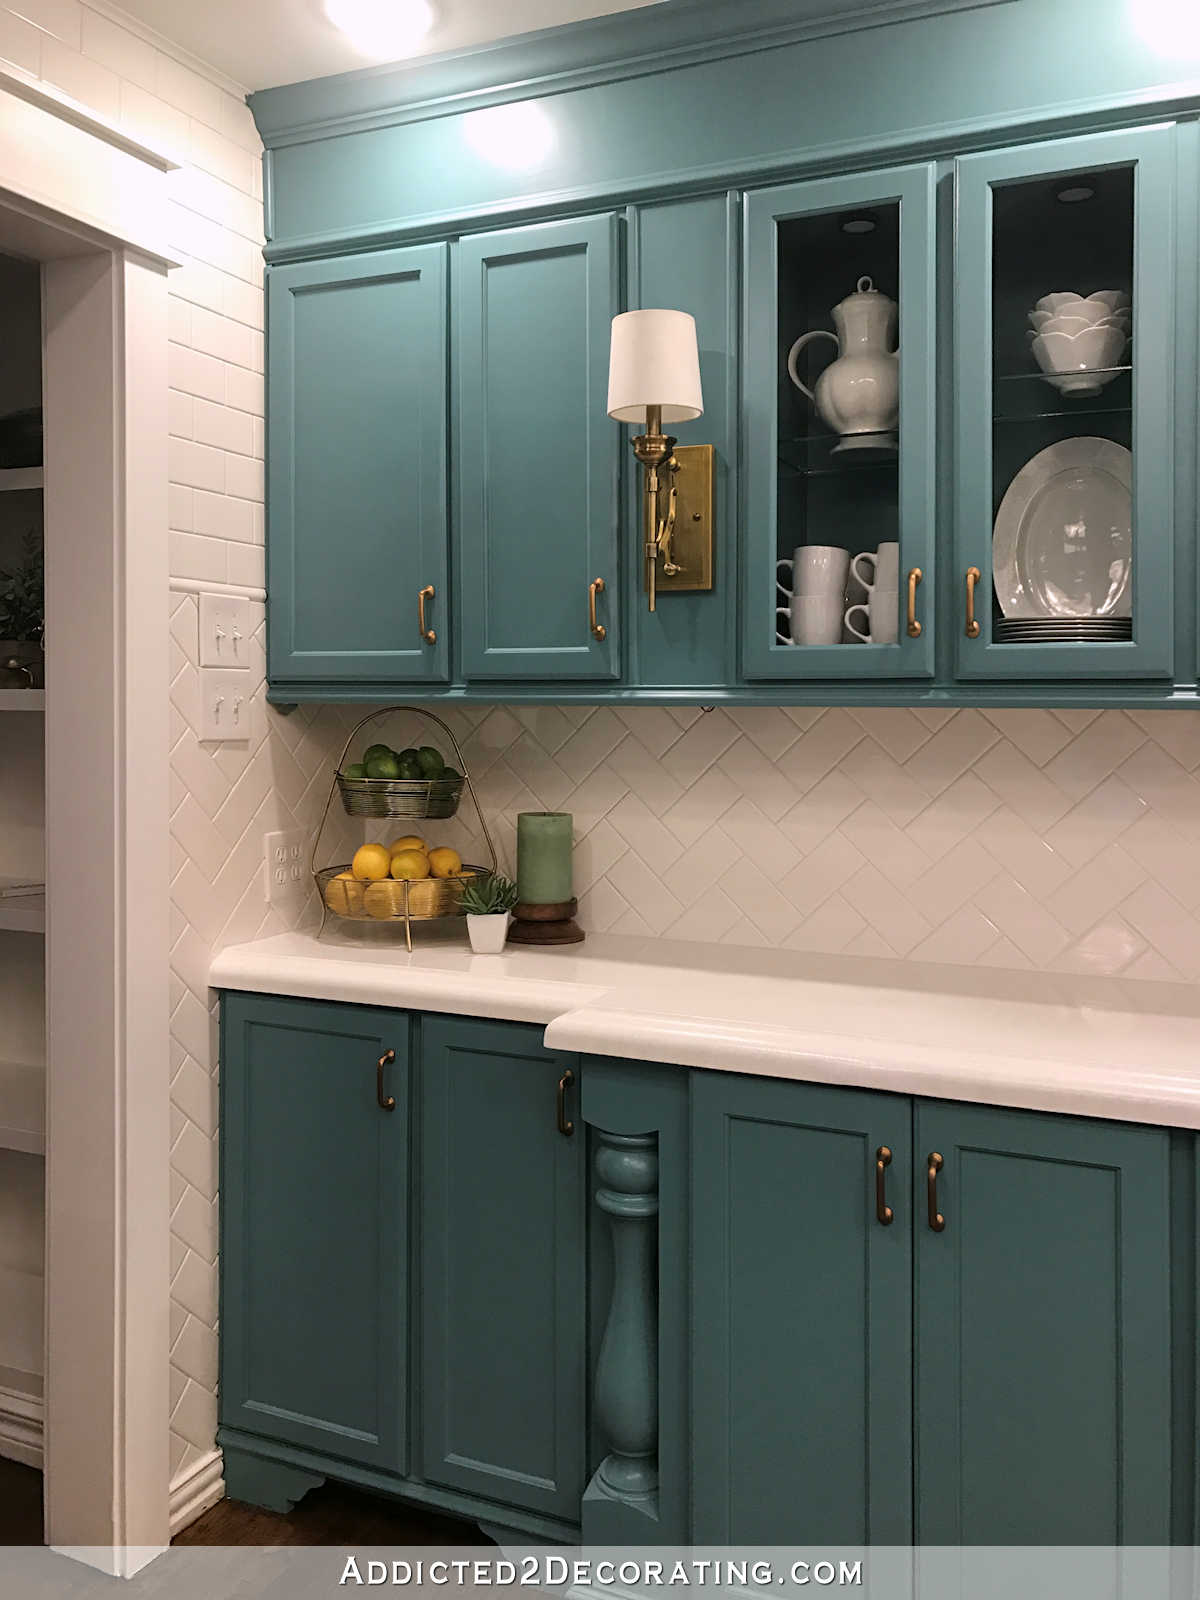 My FinishedForNow Kitchen From Kelly Green To Teal Before  After  Addicted 2 Decorating